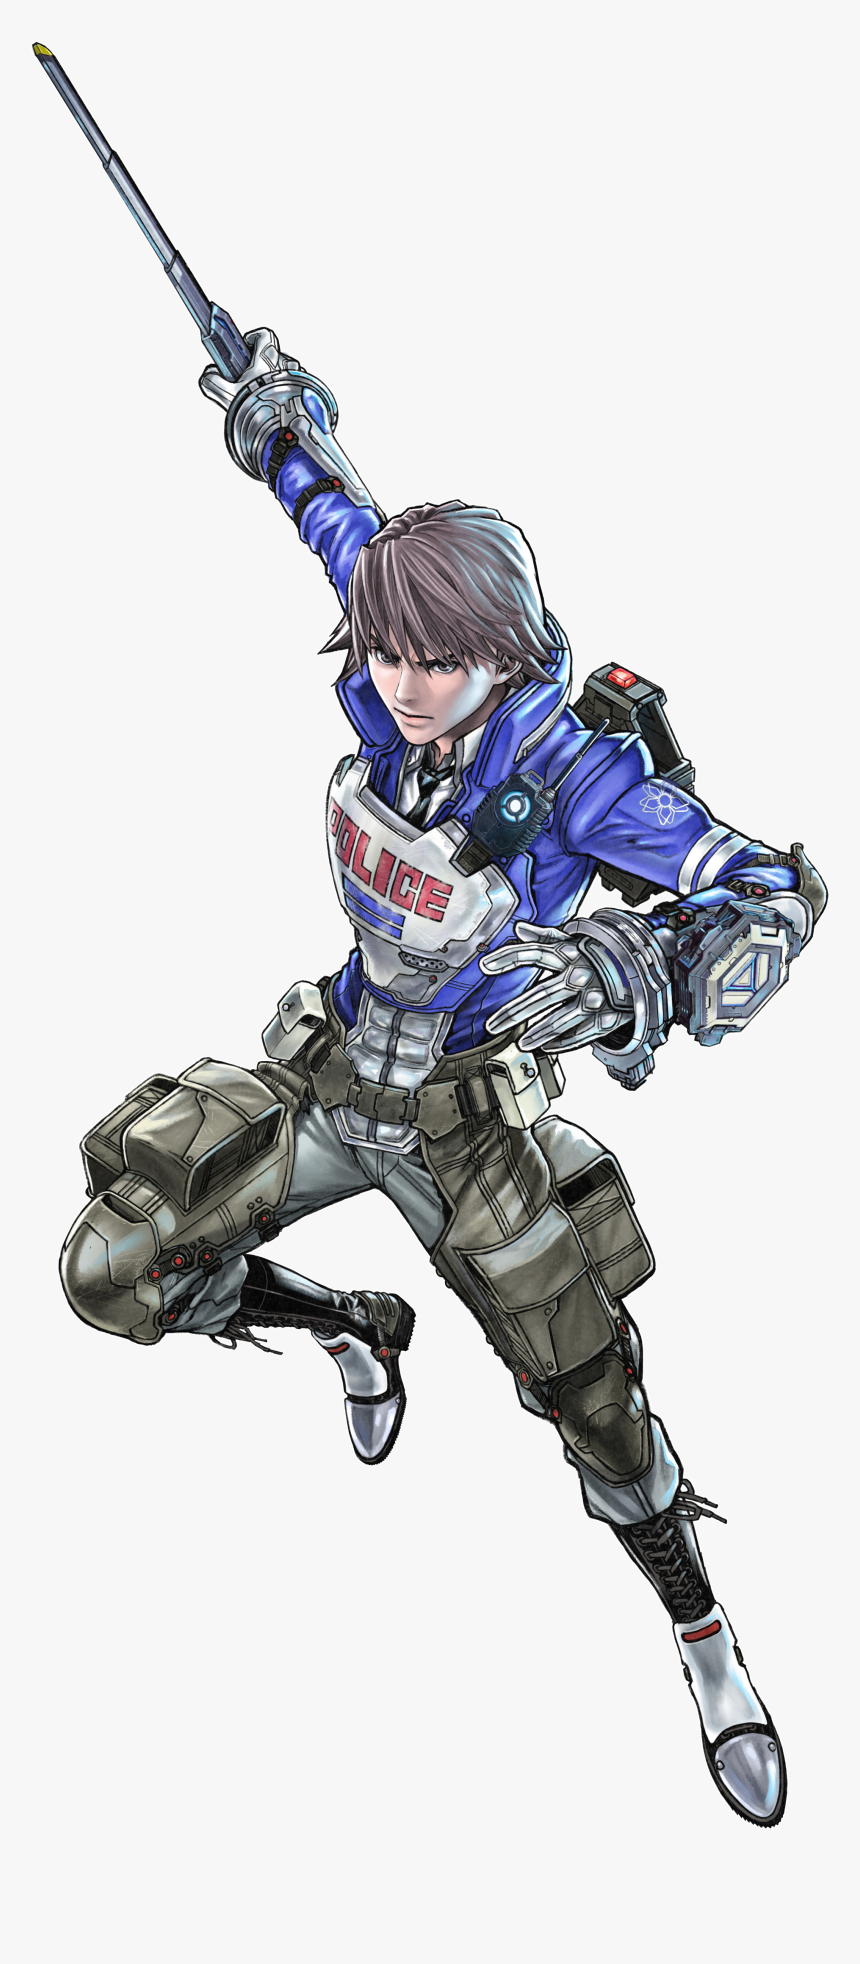 Astral Chain Wiki - Astral Chain Main Character, HD Png Download, Free Download